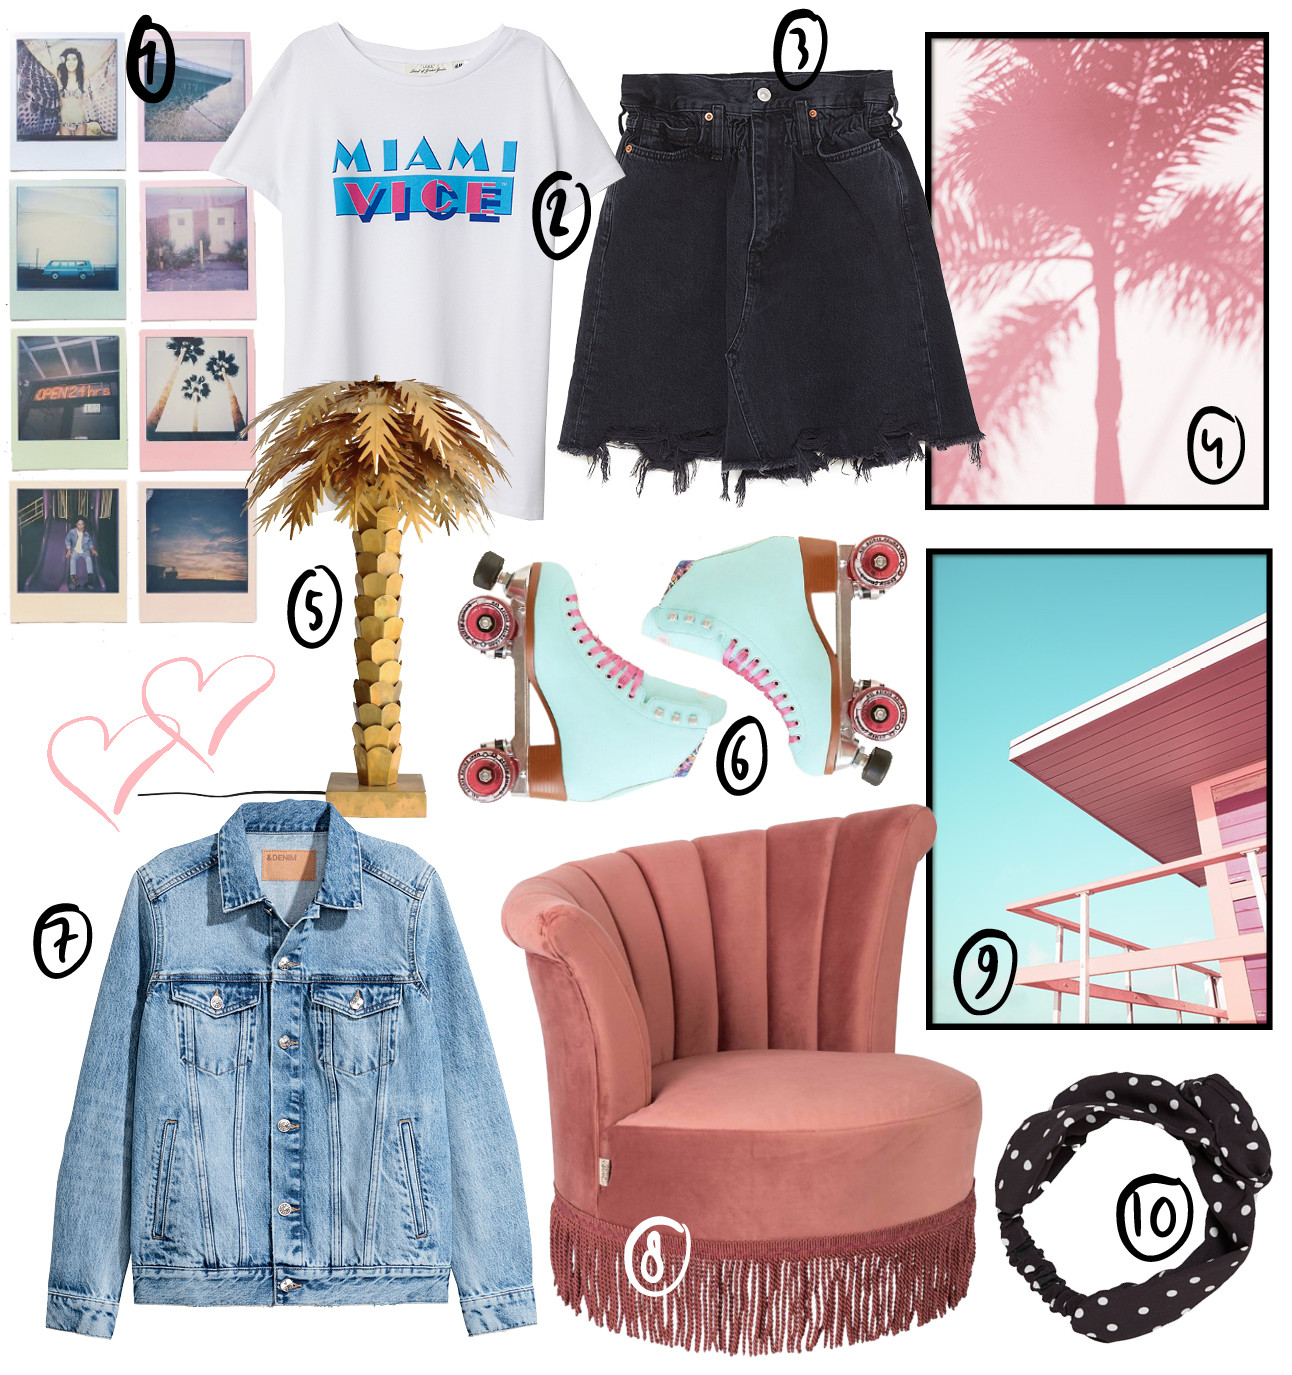 Musthaves miami items zoals polaroids, desenio posters en een palmboomlamp